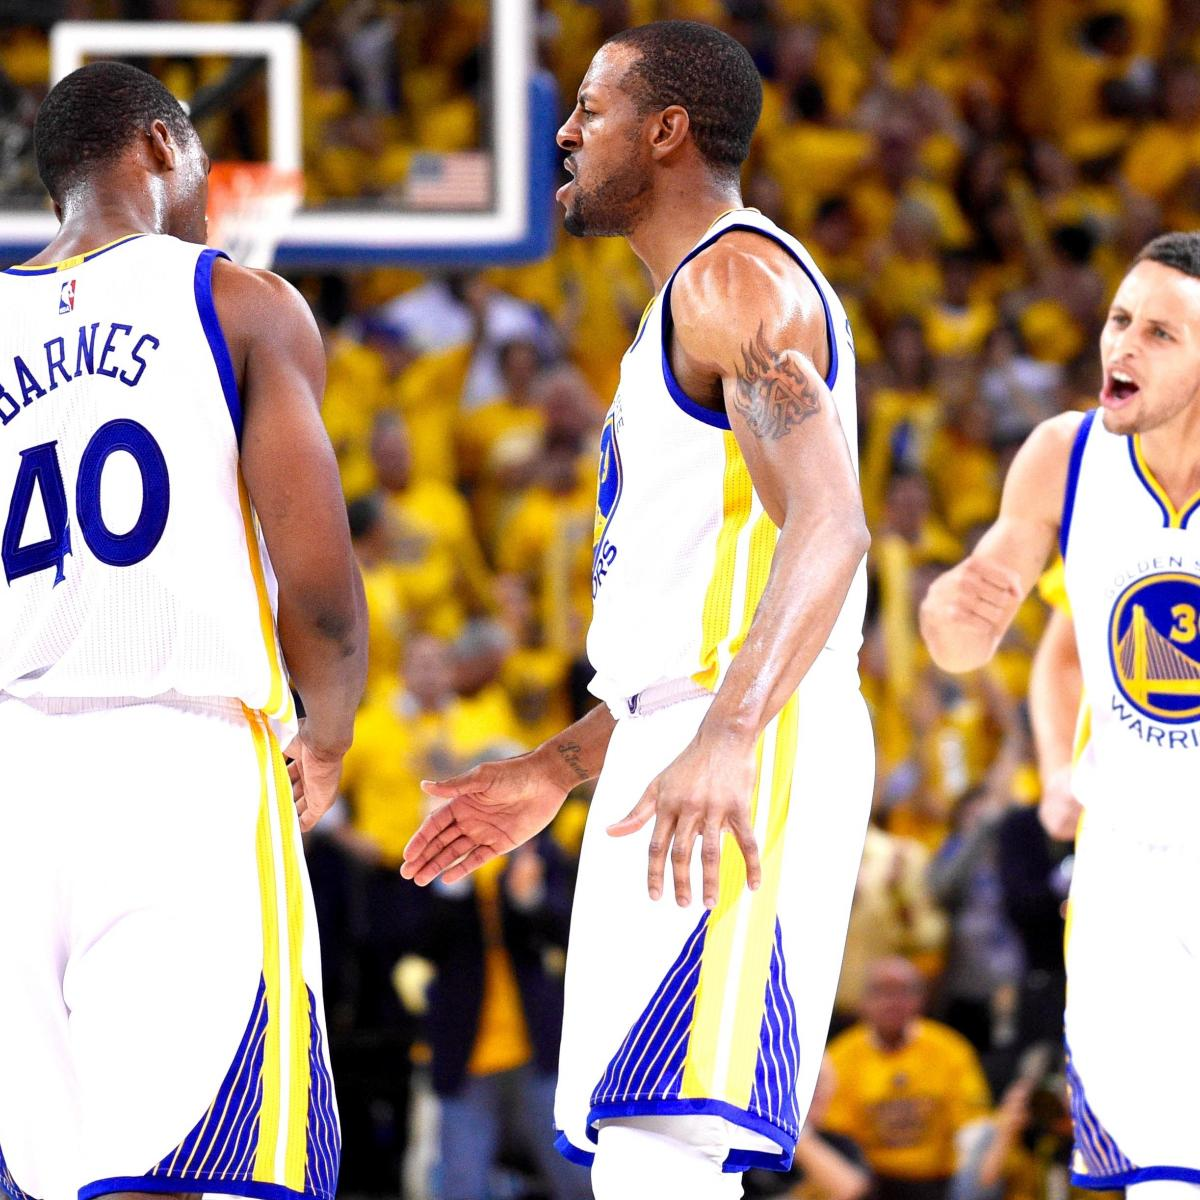 Rockets Vs Warriors May 24: Houston Rockets Vs. Golden State Warriors: Live Score And